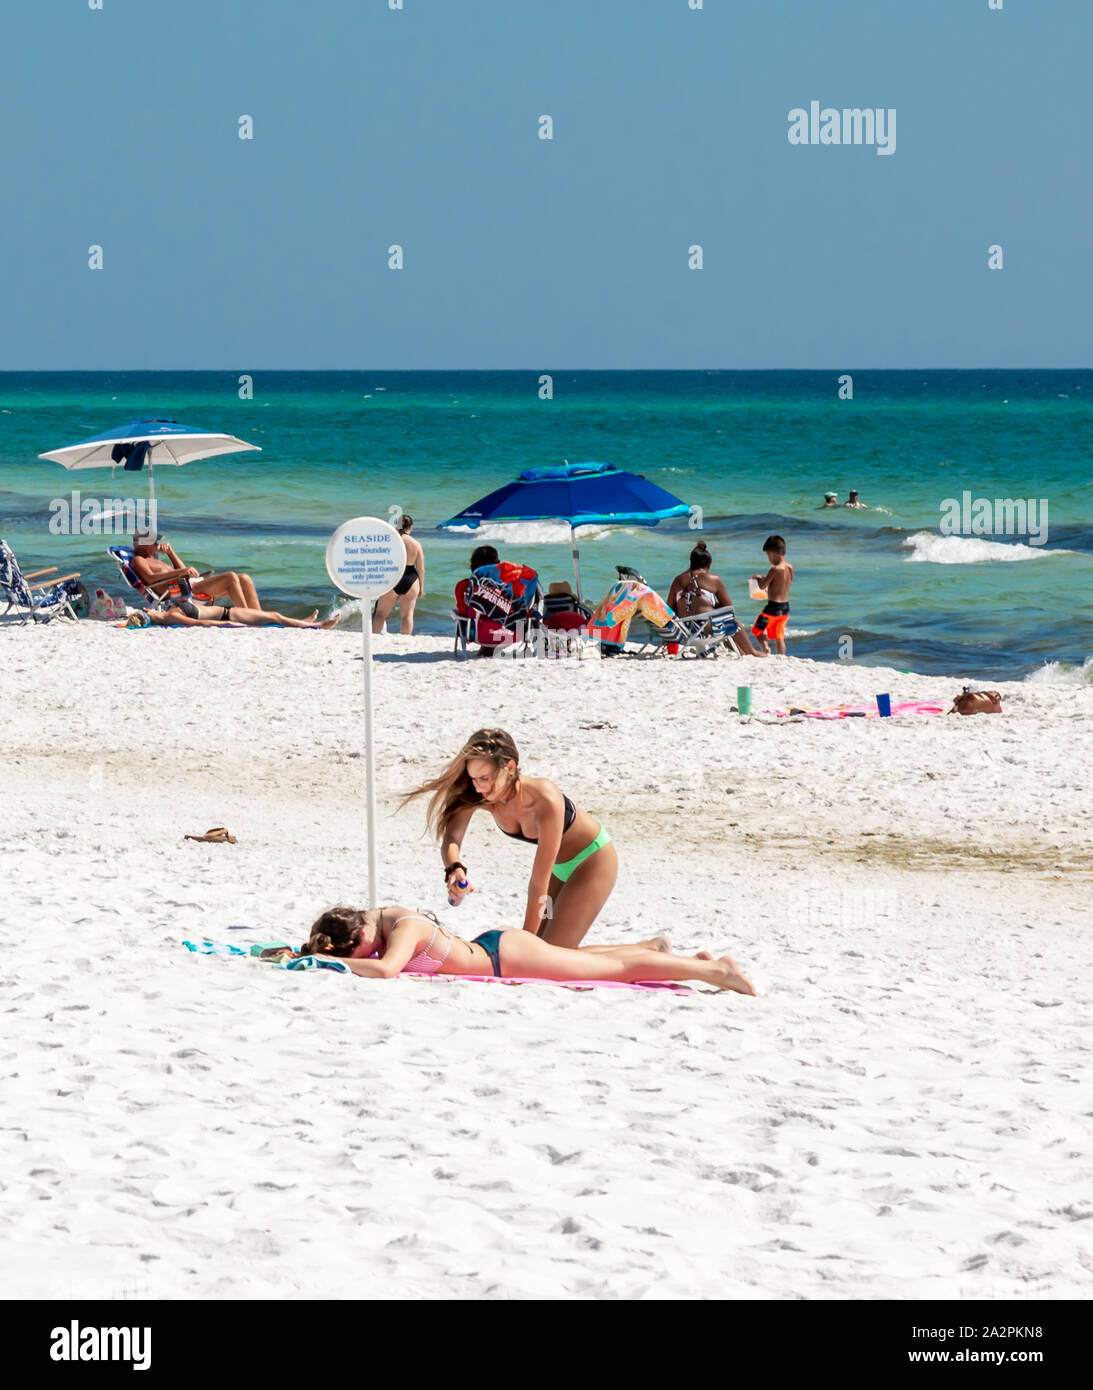 two teenage girls with people in the background on the beach at Seaside, FL Stock Photo